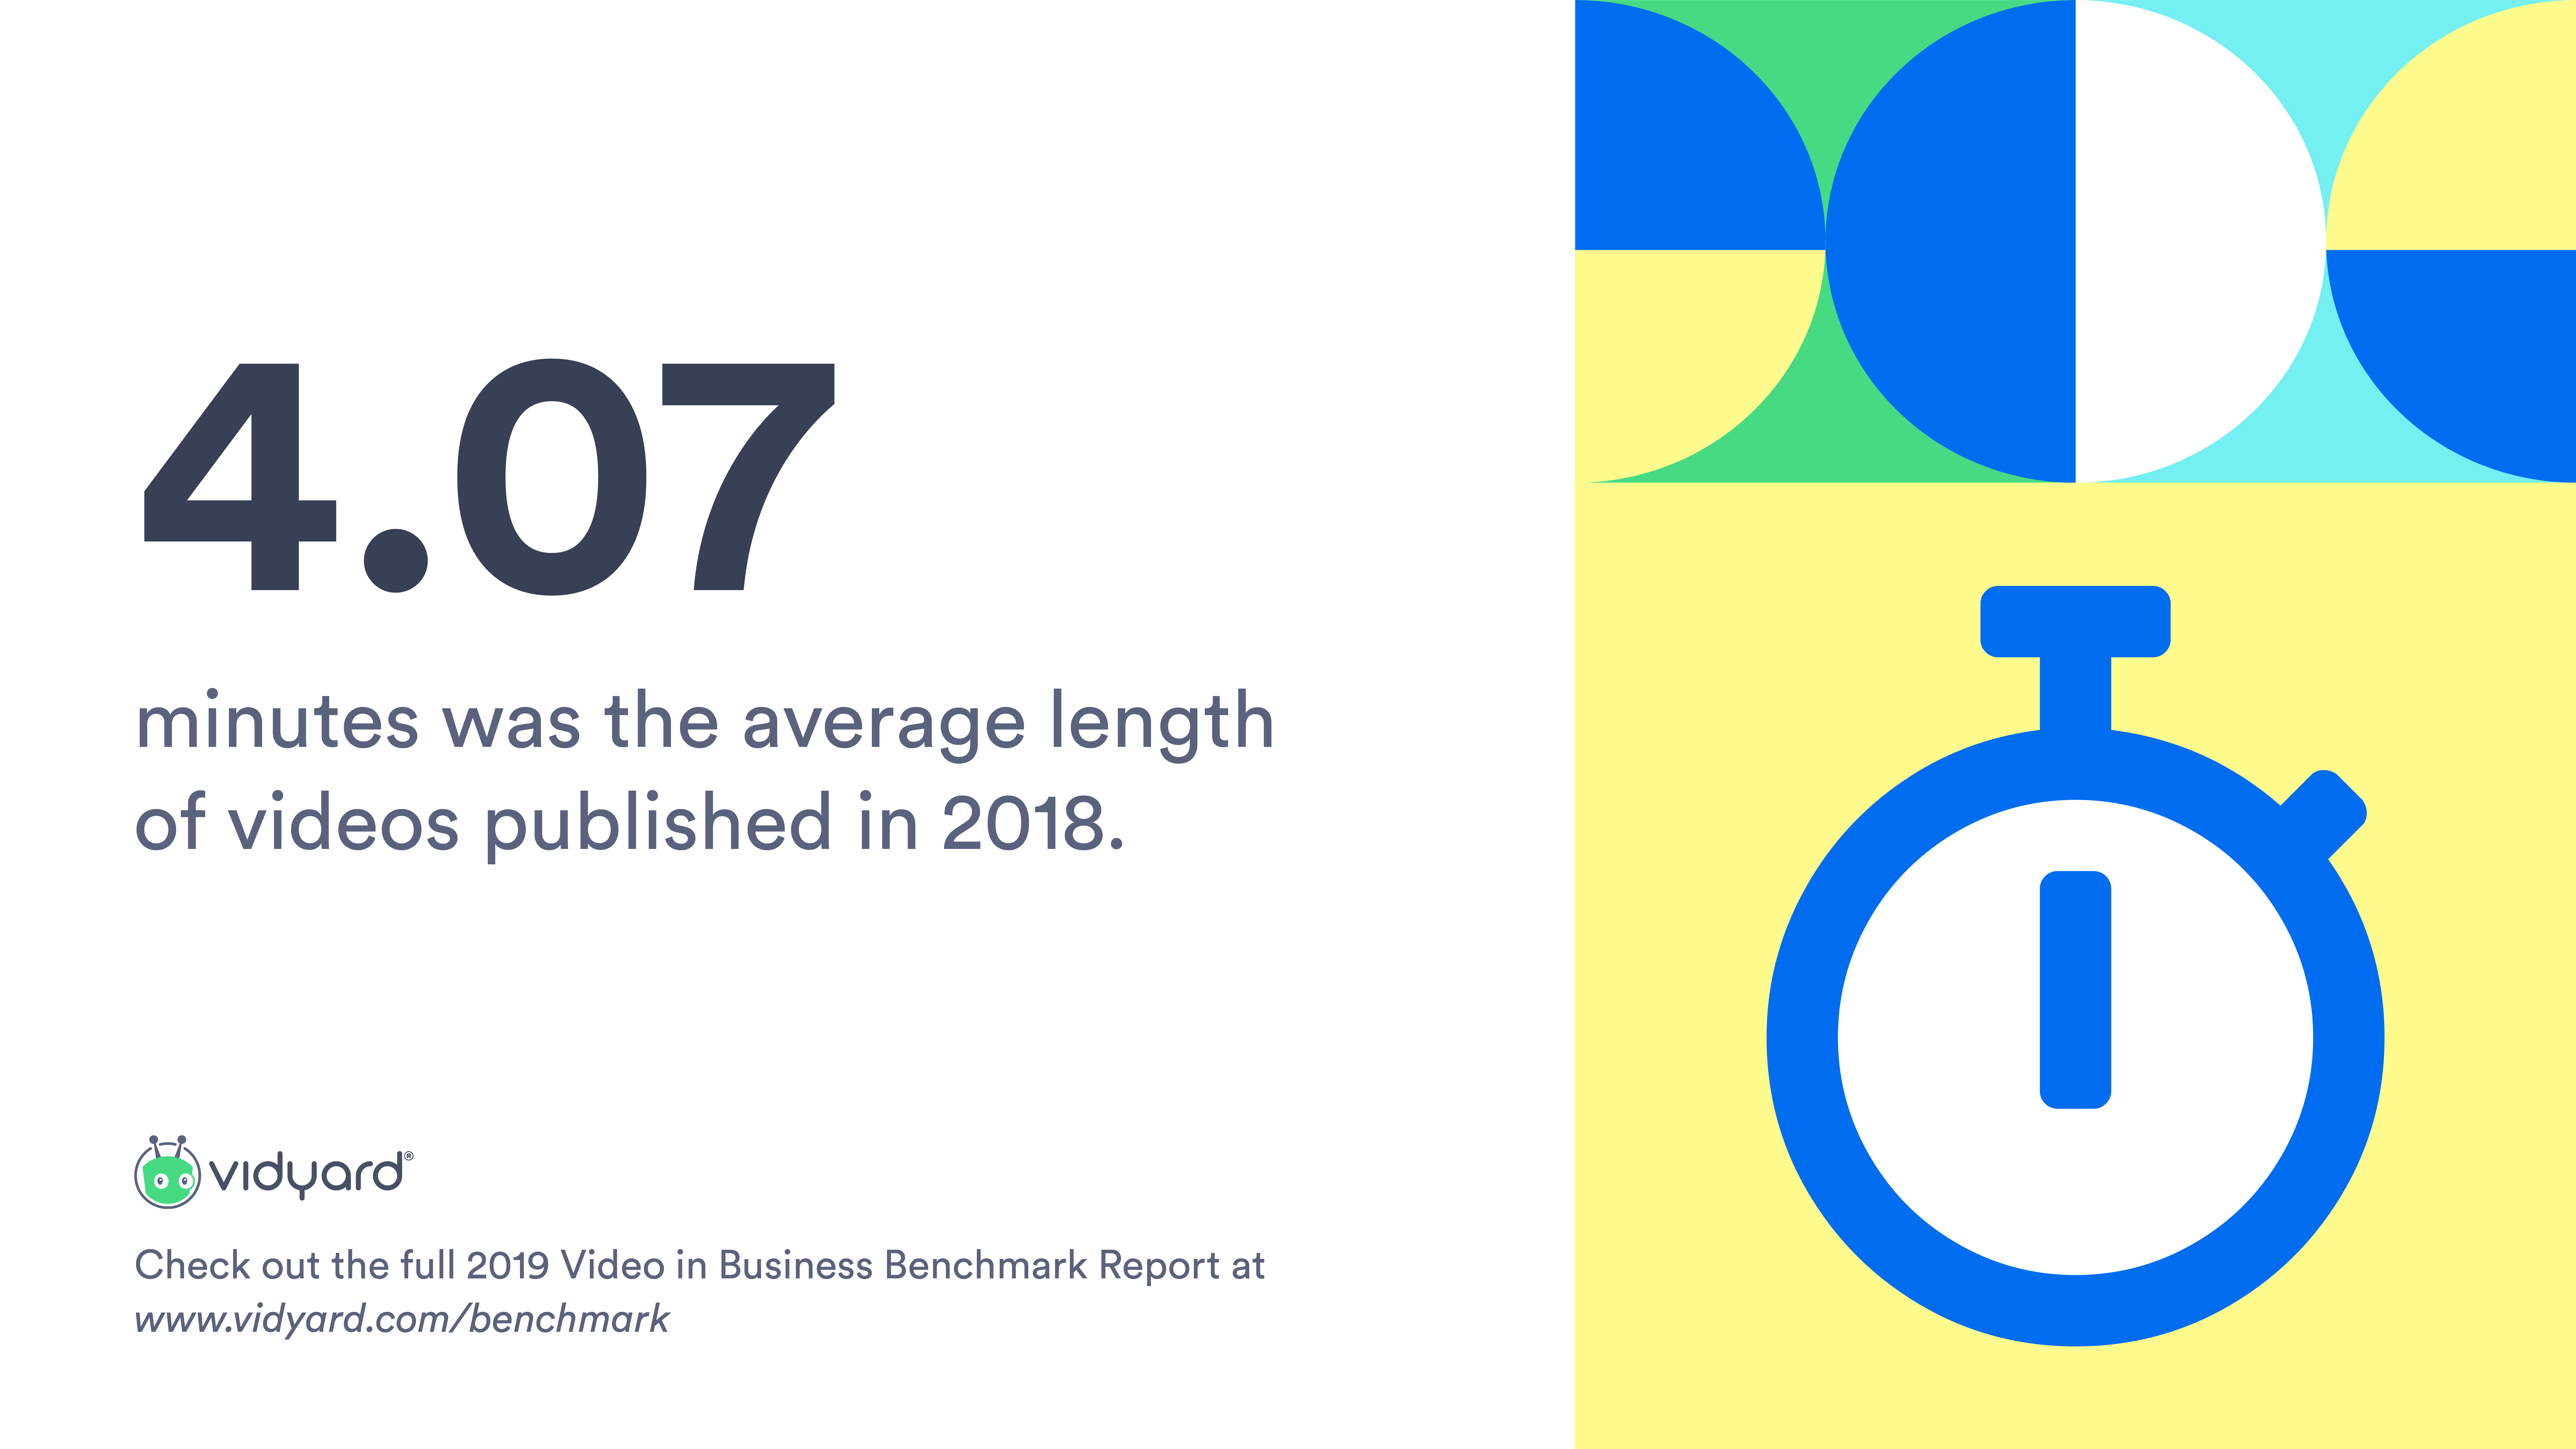 Average business video length is trending shorter year-over-year: In 2018, the average length was 4.07 minutes long, 33% shorter than 2017's 6.07 minutes.